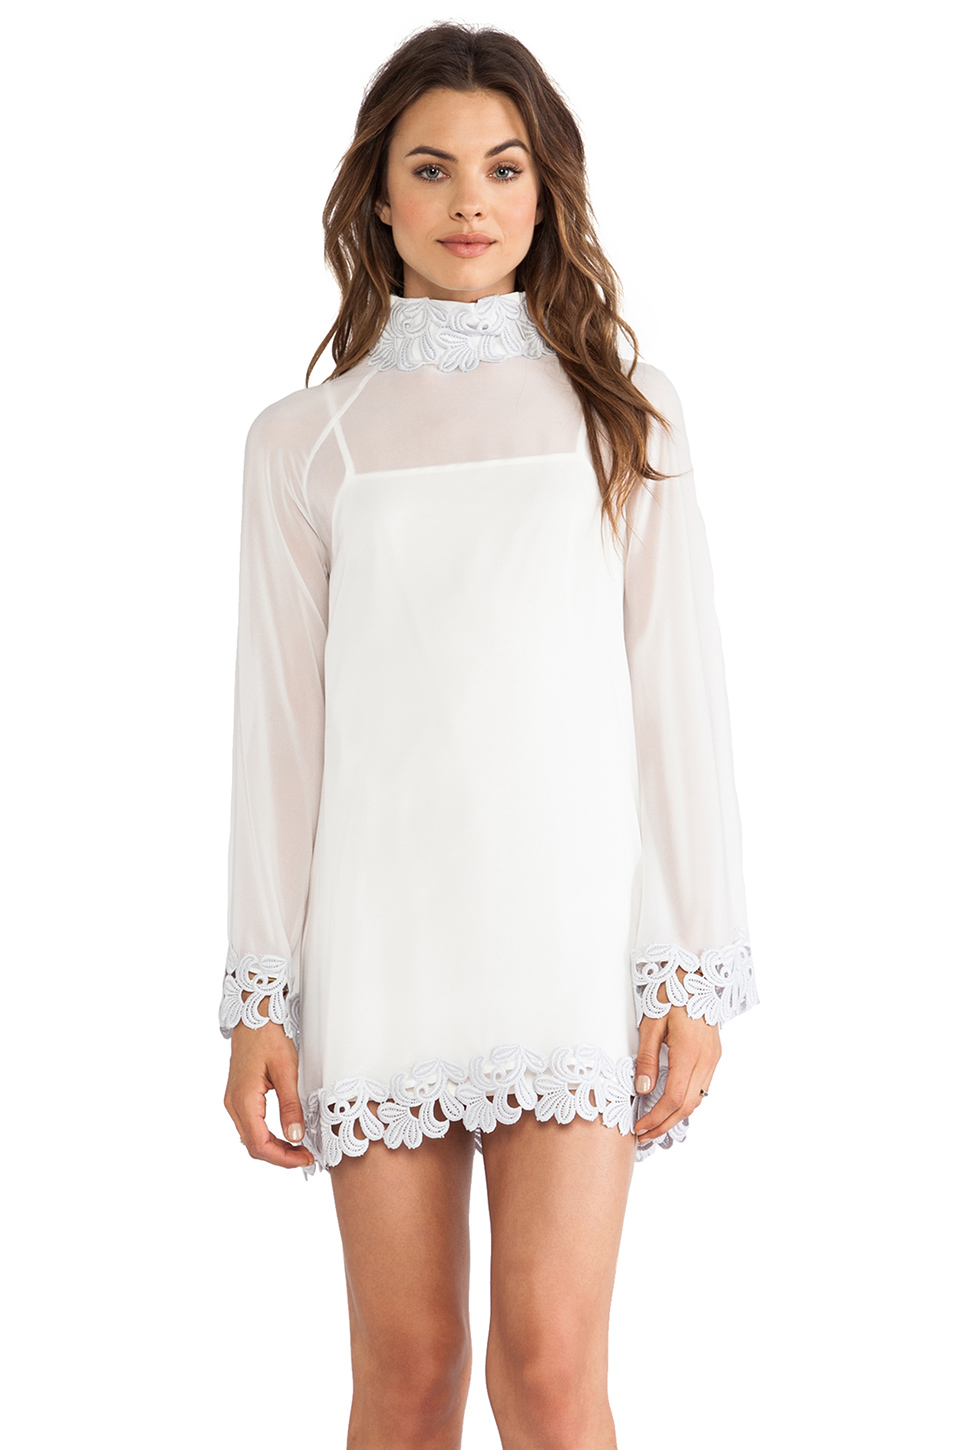 AGAIN Little Edie Parisian Laced Chiffon Bell Sleeve Dress in White Lavender